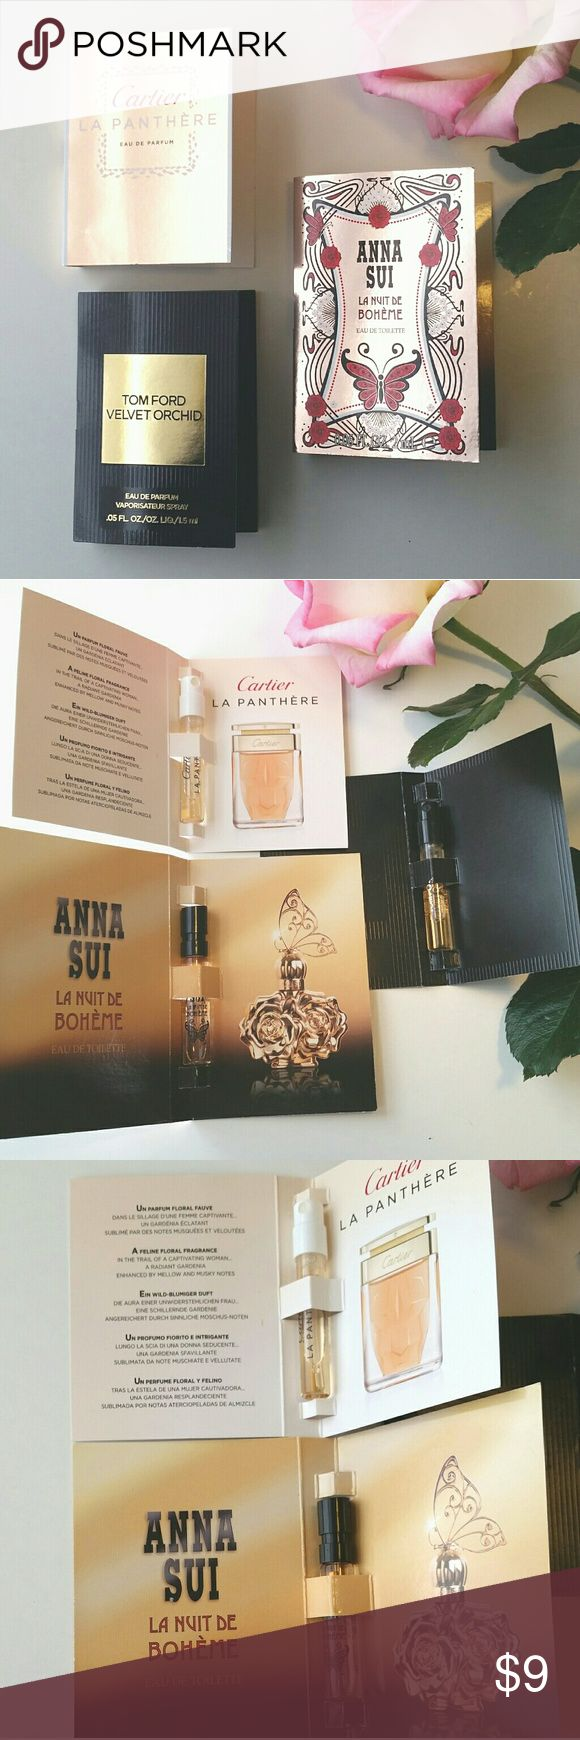 Cartier, Anna Sui, Tom Ford fragrance samples NIB 3 carded sample spray samples.   Cartier La Panthere - Lush gardenia and warm musk. Best with a slinky silk dress.   Anna Sui La Nuit de Boheme - fruity patchouli and roses. Boho fabulous!   Tom Ford Velvet Orchid - Rich vanilla and tobacco layered with woods. Like a fluffy cashmere sweater. Other